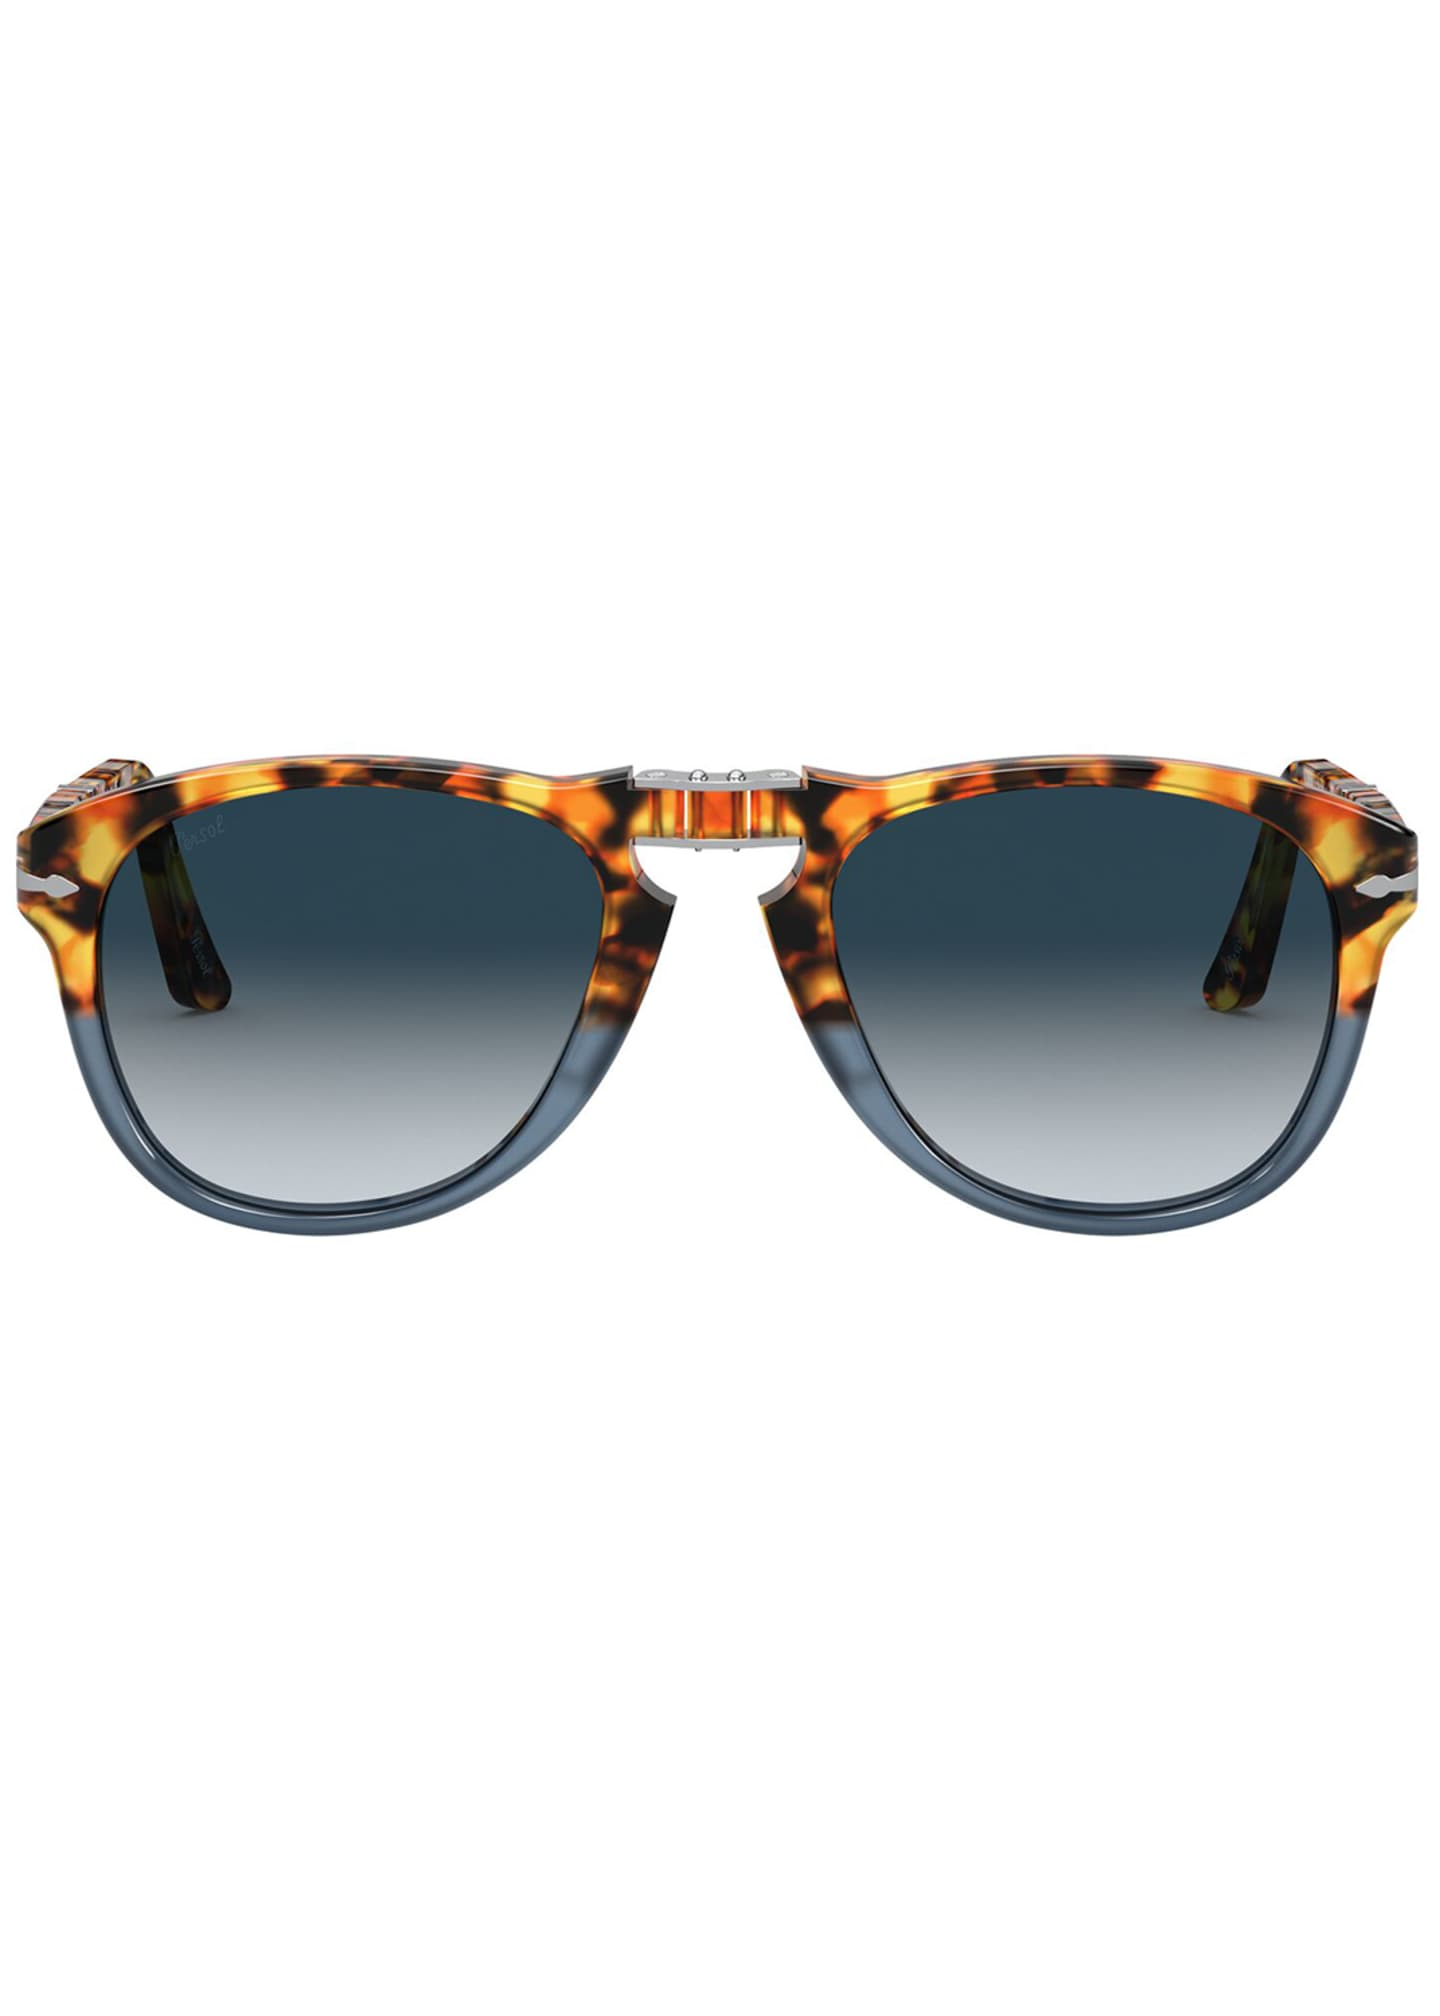 Image 2 of 4: Men's Gradient Tortoiseshell Acetate Folding Sunglasses